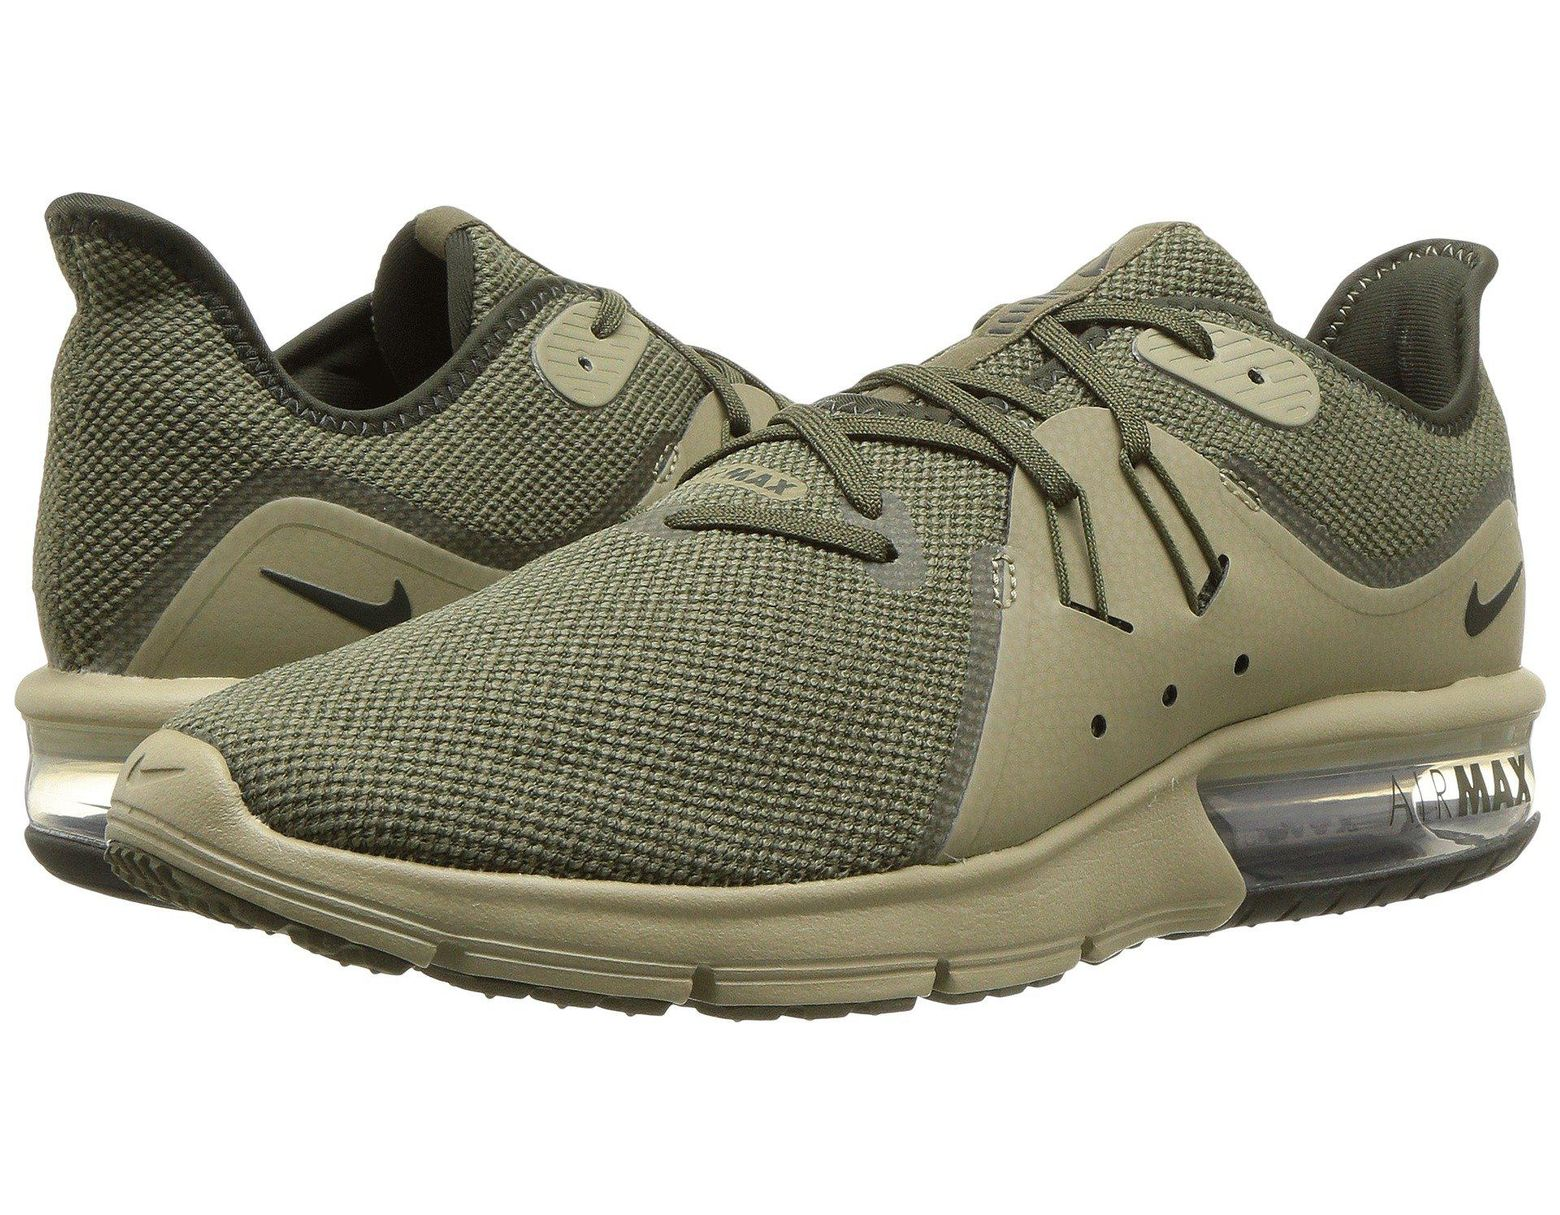 the best attitude 5d5f6 2bcf8 Nike Air Max Sequent 3 in Green for Men - Save 2% - Lyst